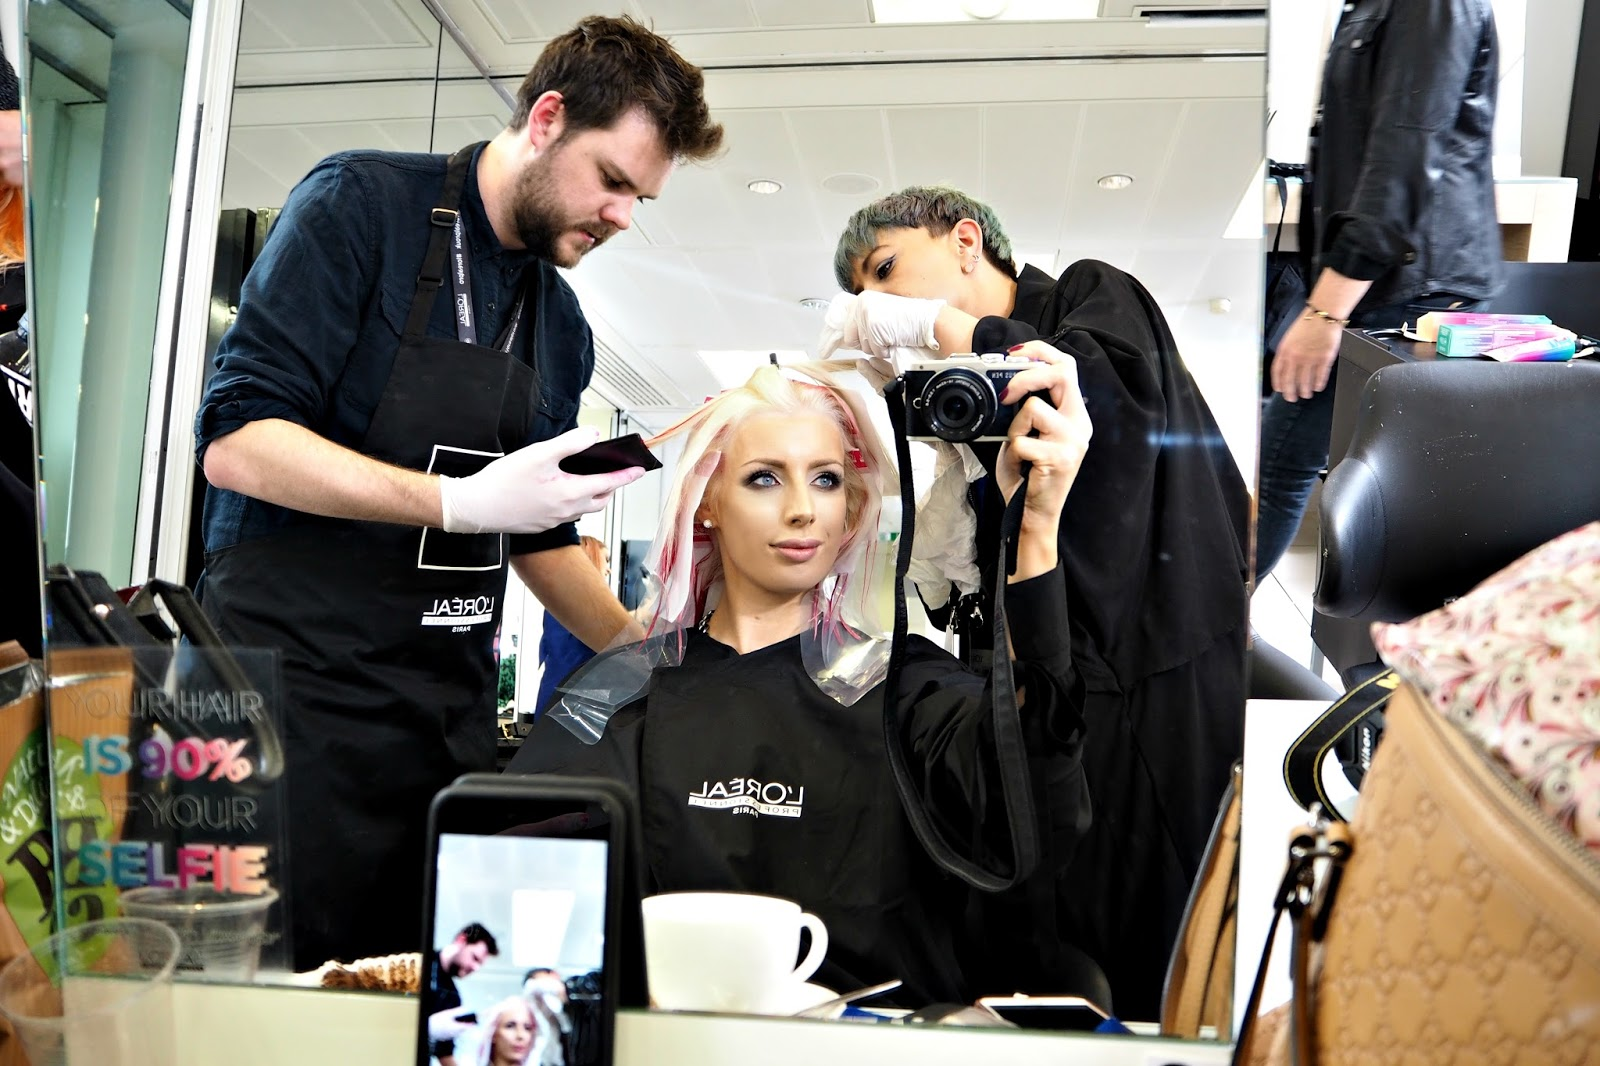 getting my hair done by Will and Lara from Electric London salon